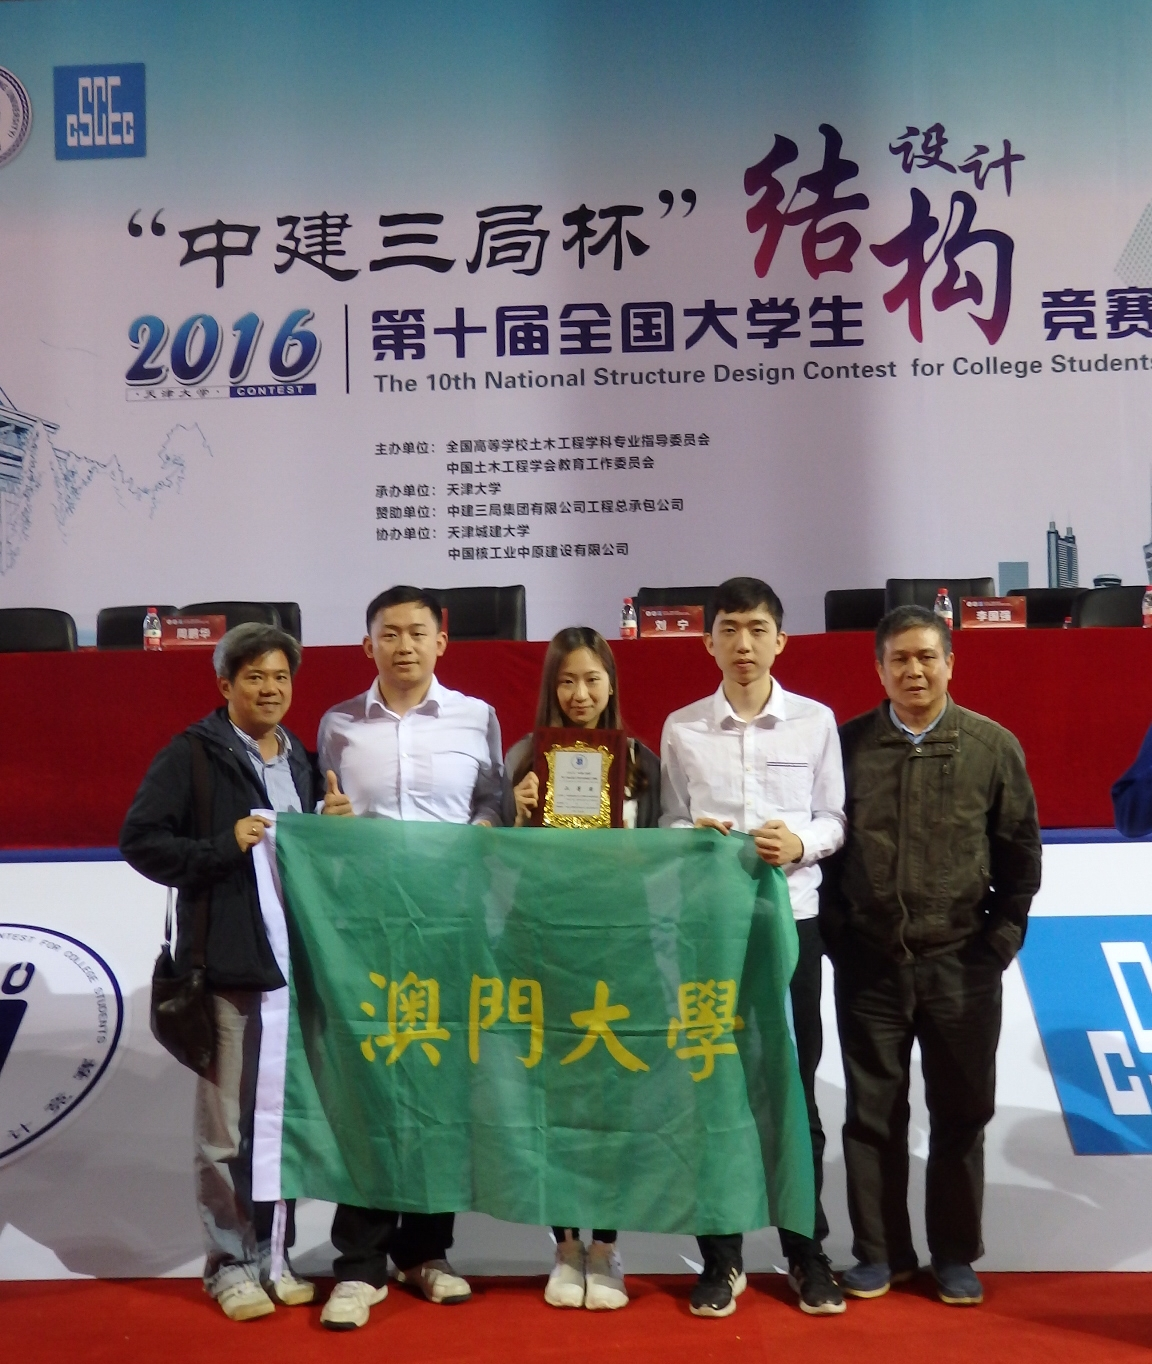 UM students receive the second prize at the Tenth National Structure Design Contest for College Students